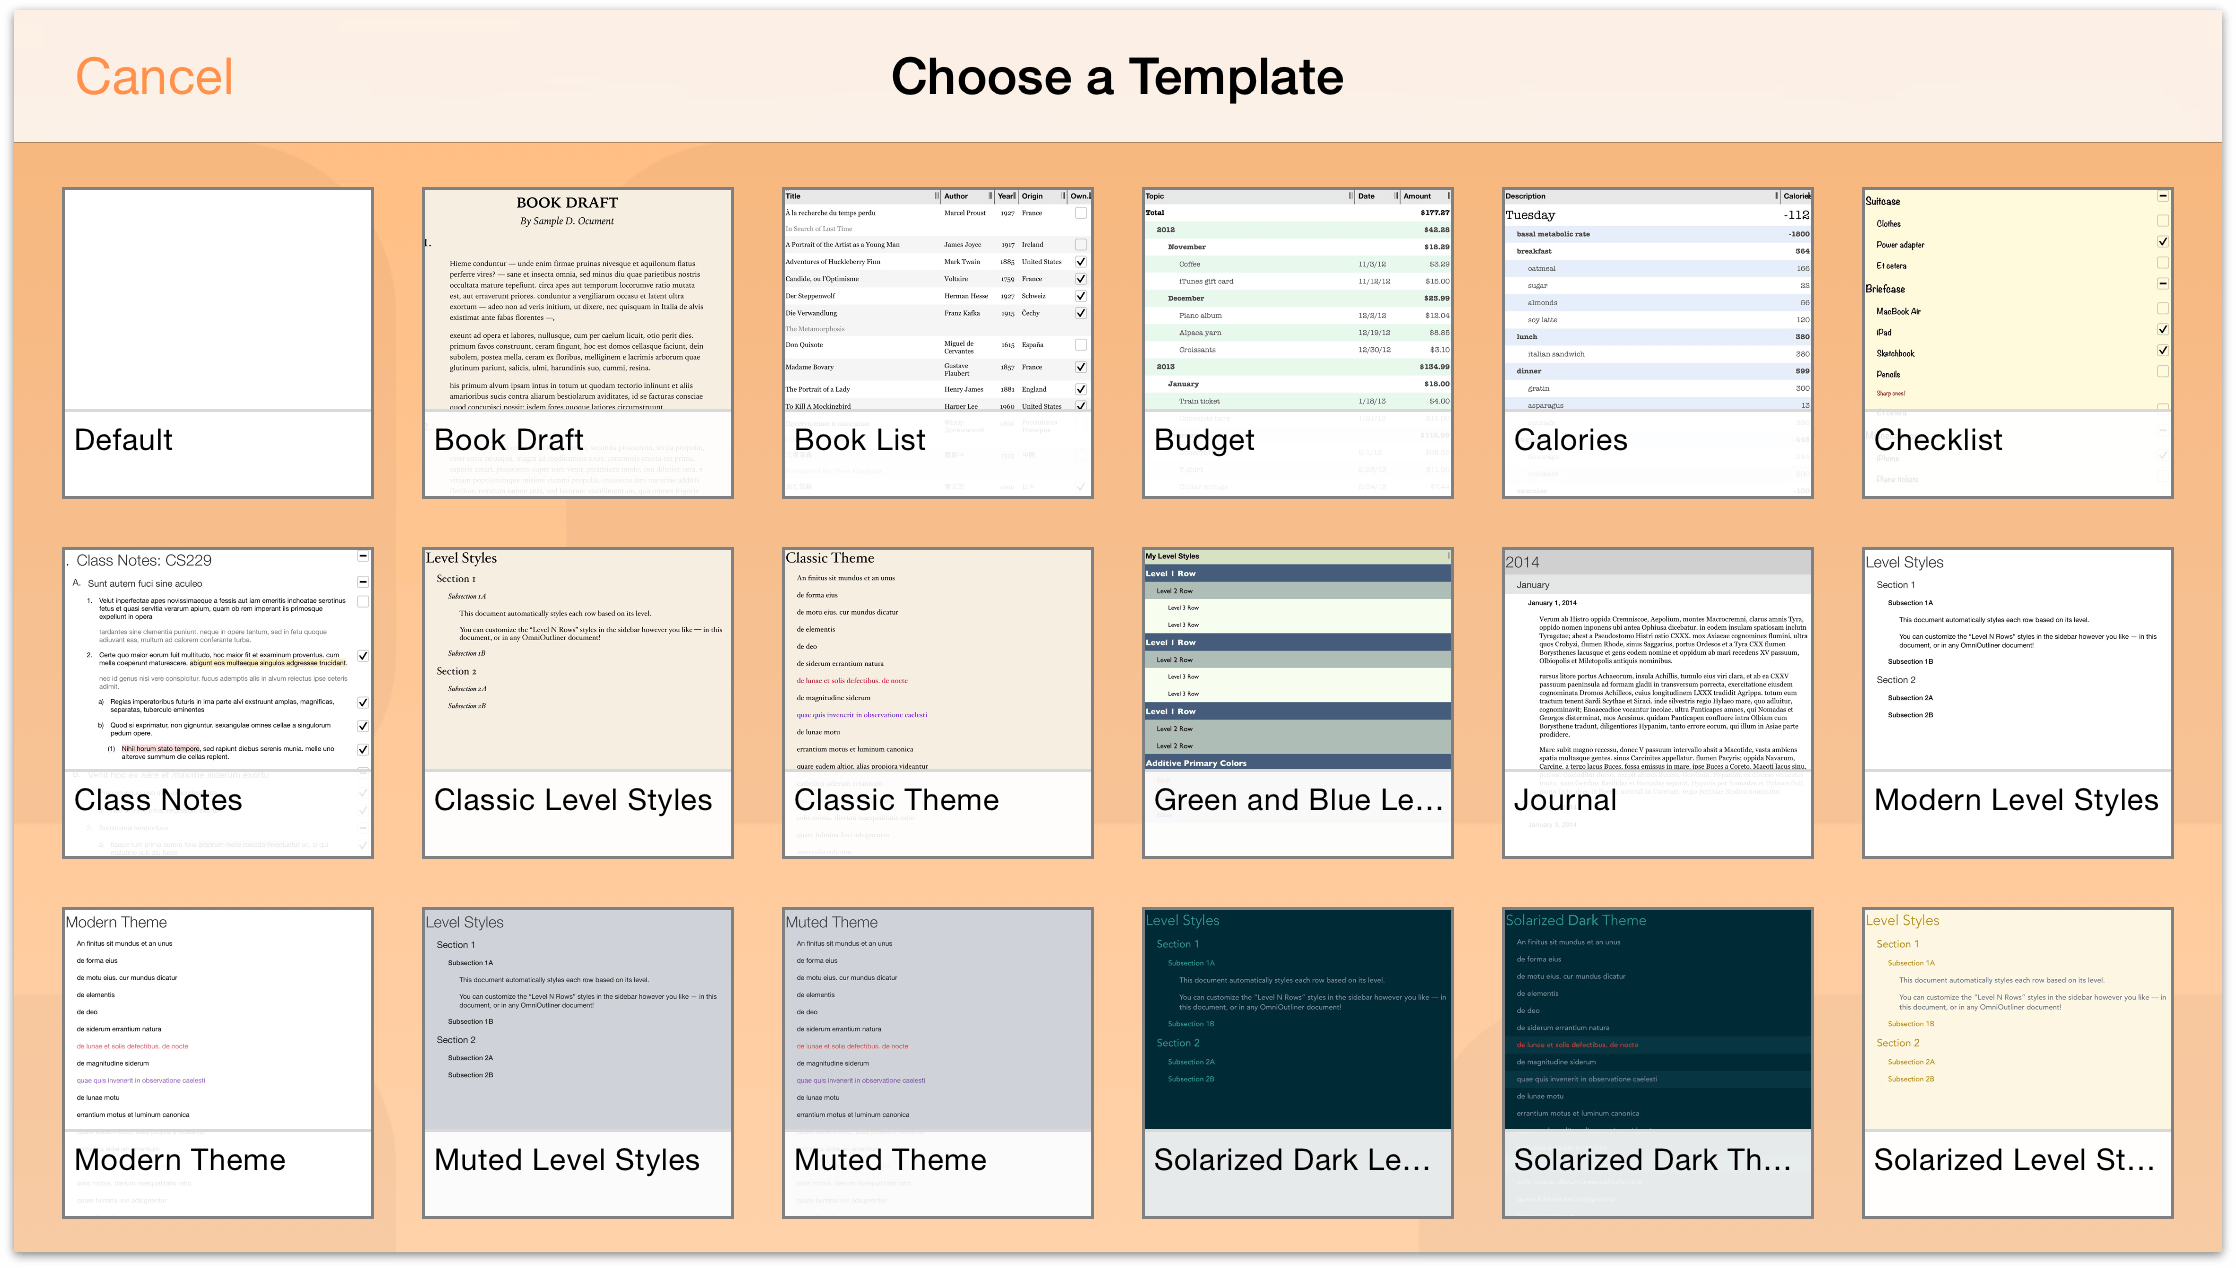 omnioutliner 2 5 for ios user manual working with templates and styles